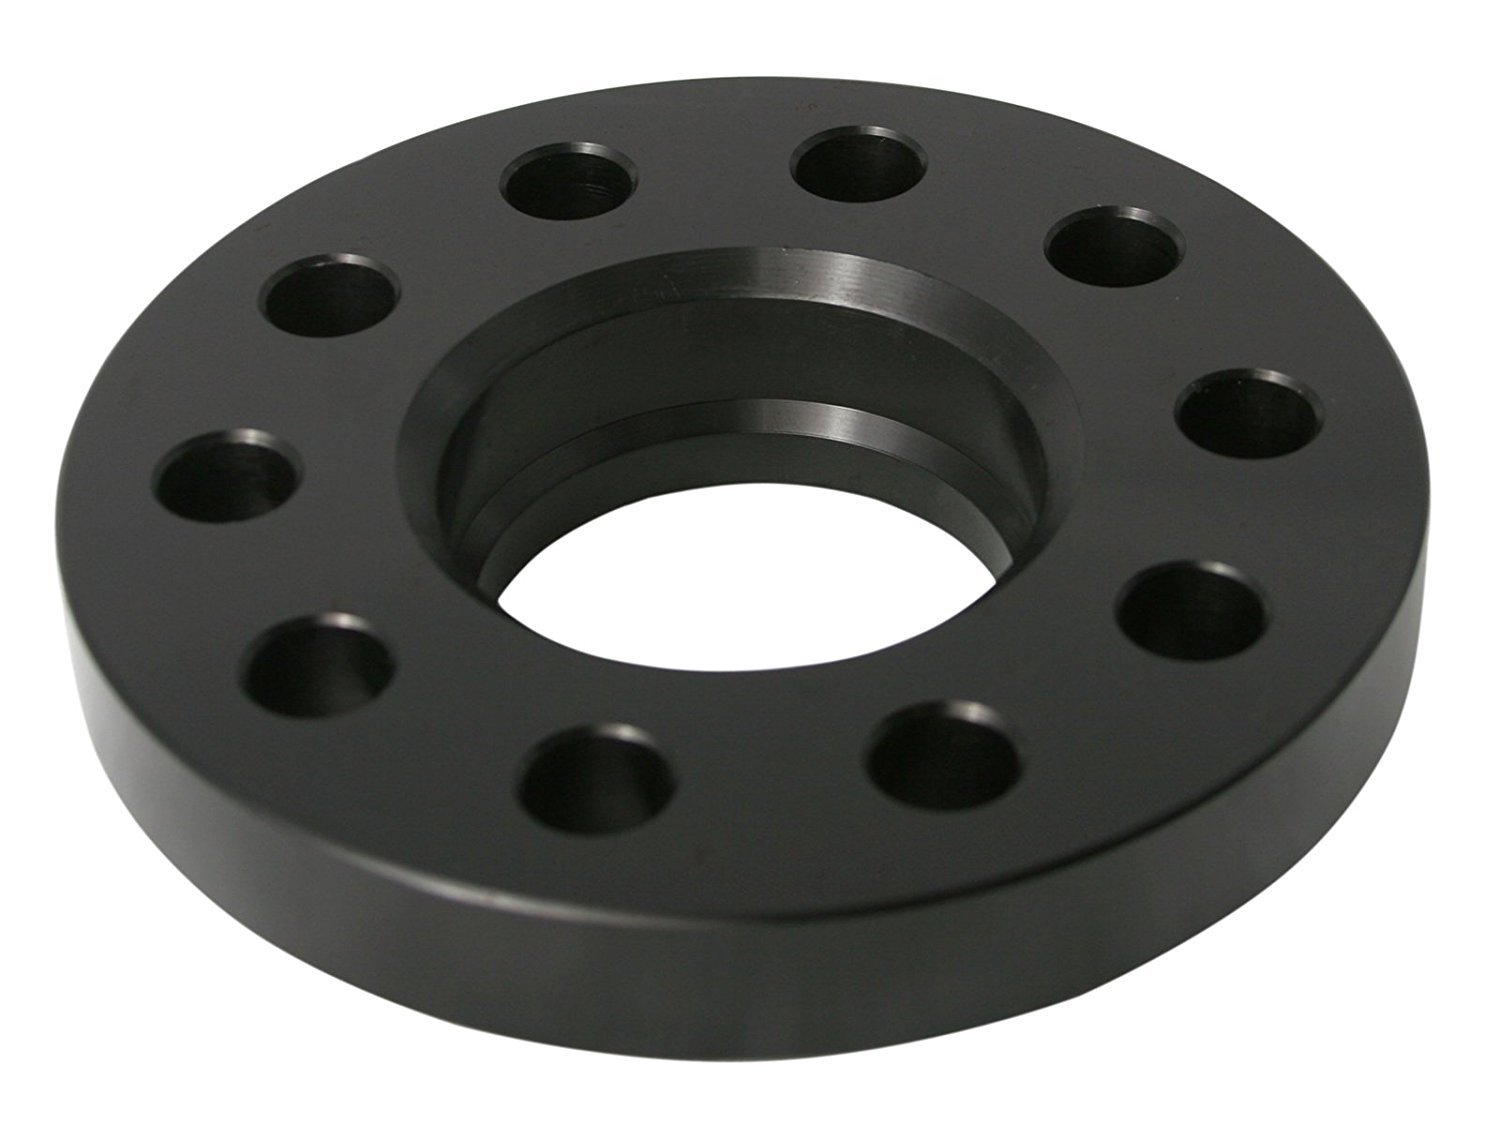 5 Lug Wheel Spacers 5x130 2X 7mm Thick 5x130mm for Porsche 911 Boxster Cayenne Panamera Cayman with 14x1.5 Studs ECCPP Replacement for Wheel Spacer for Porsche